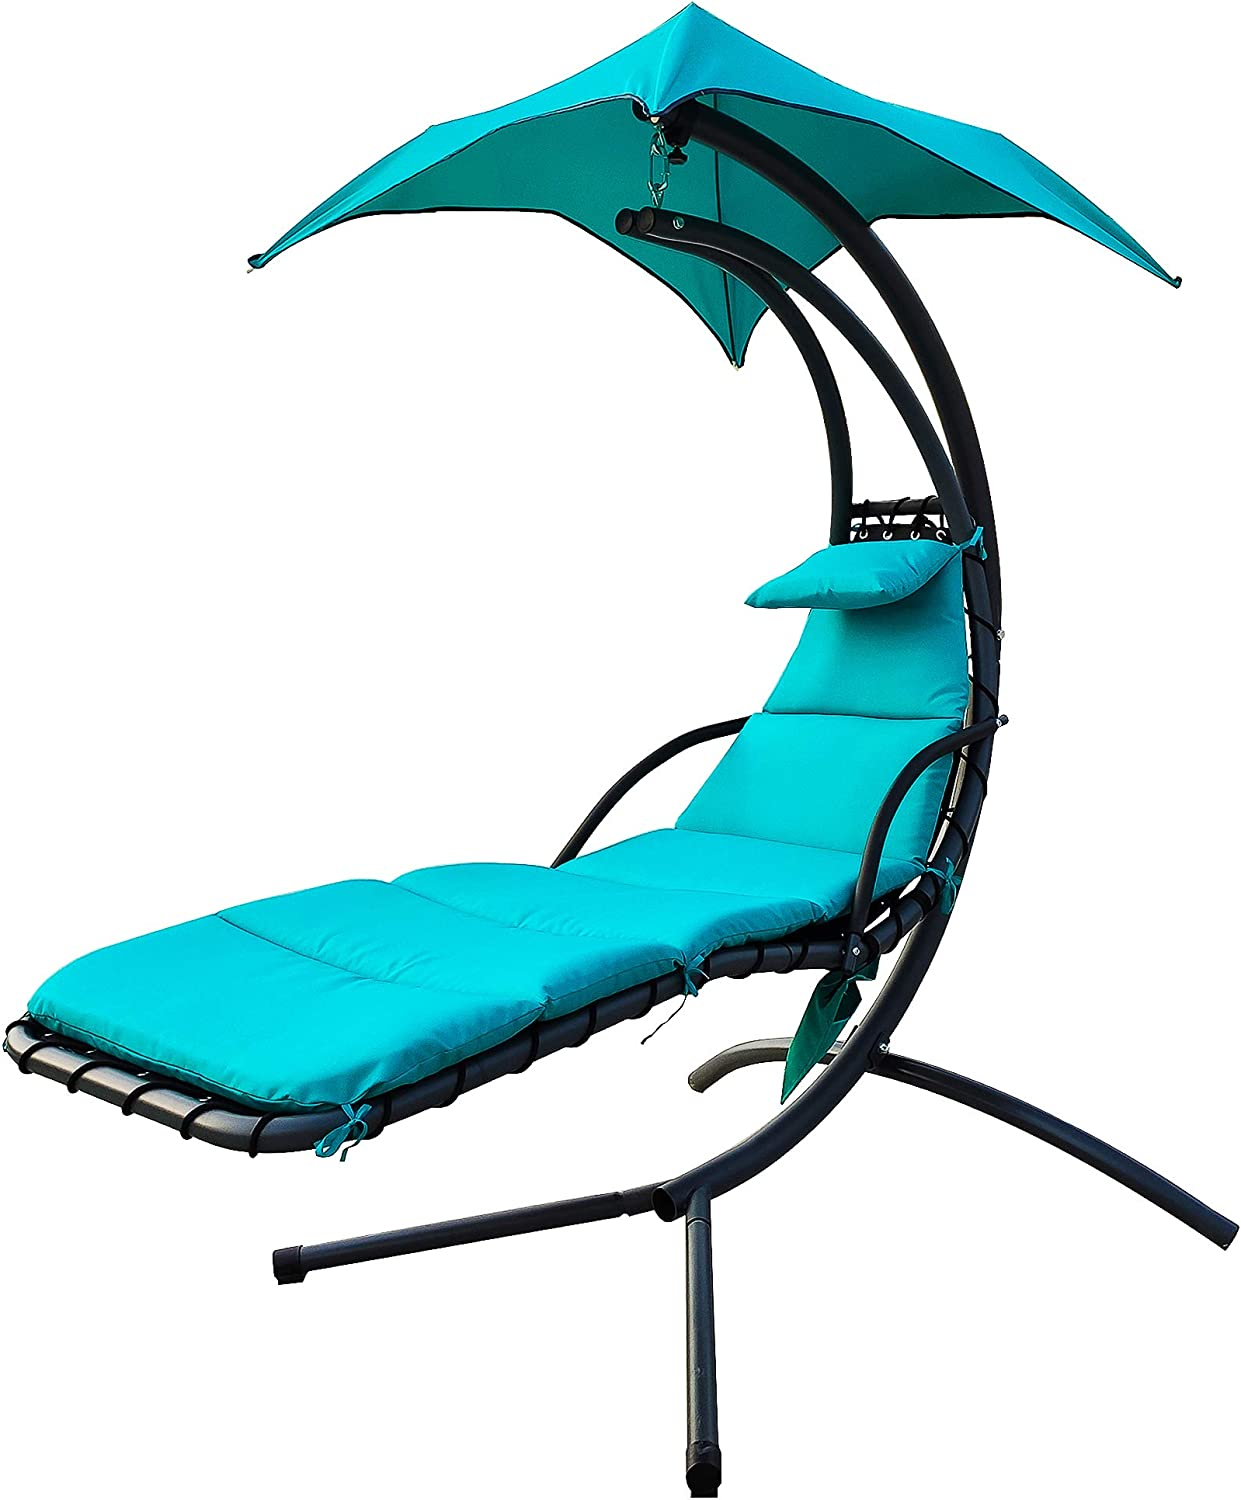 BalanceFrom Regular store Hanging Curved Chaise Manufacturer OFFicial shop Lounge with Chair Swing Cushio